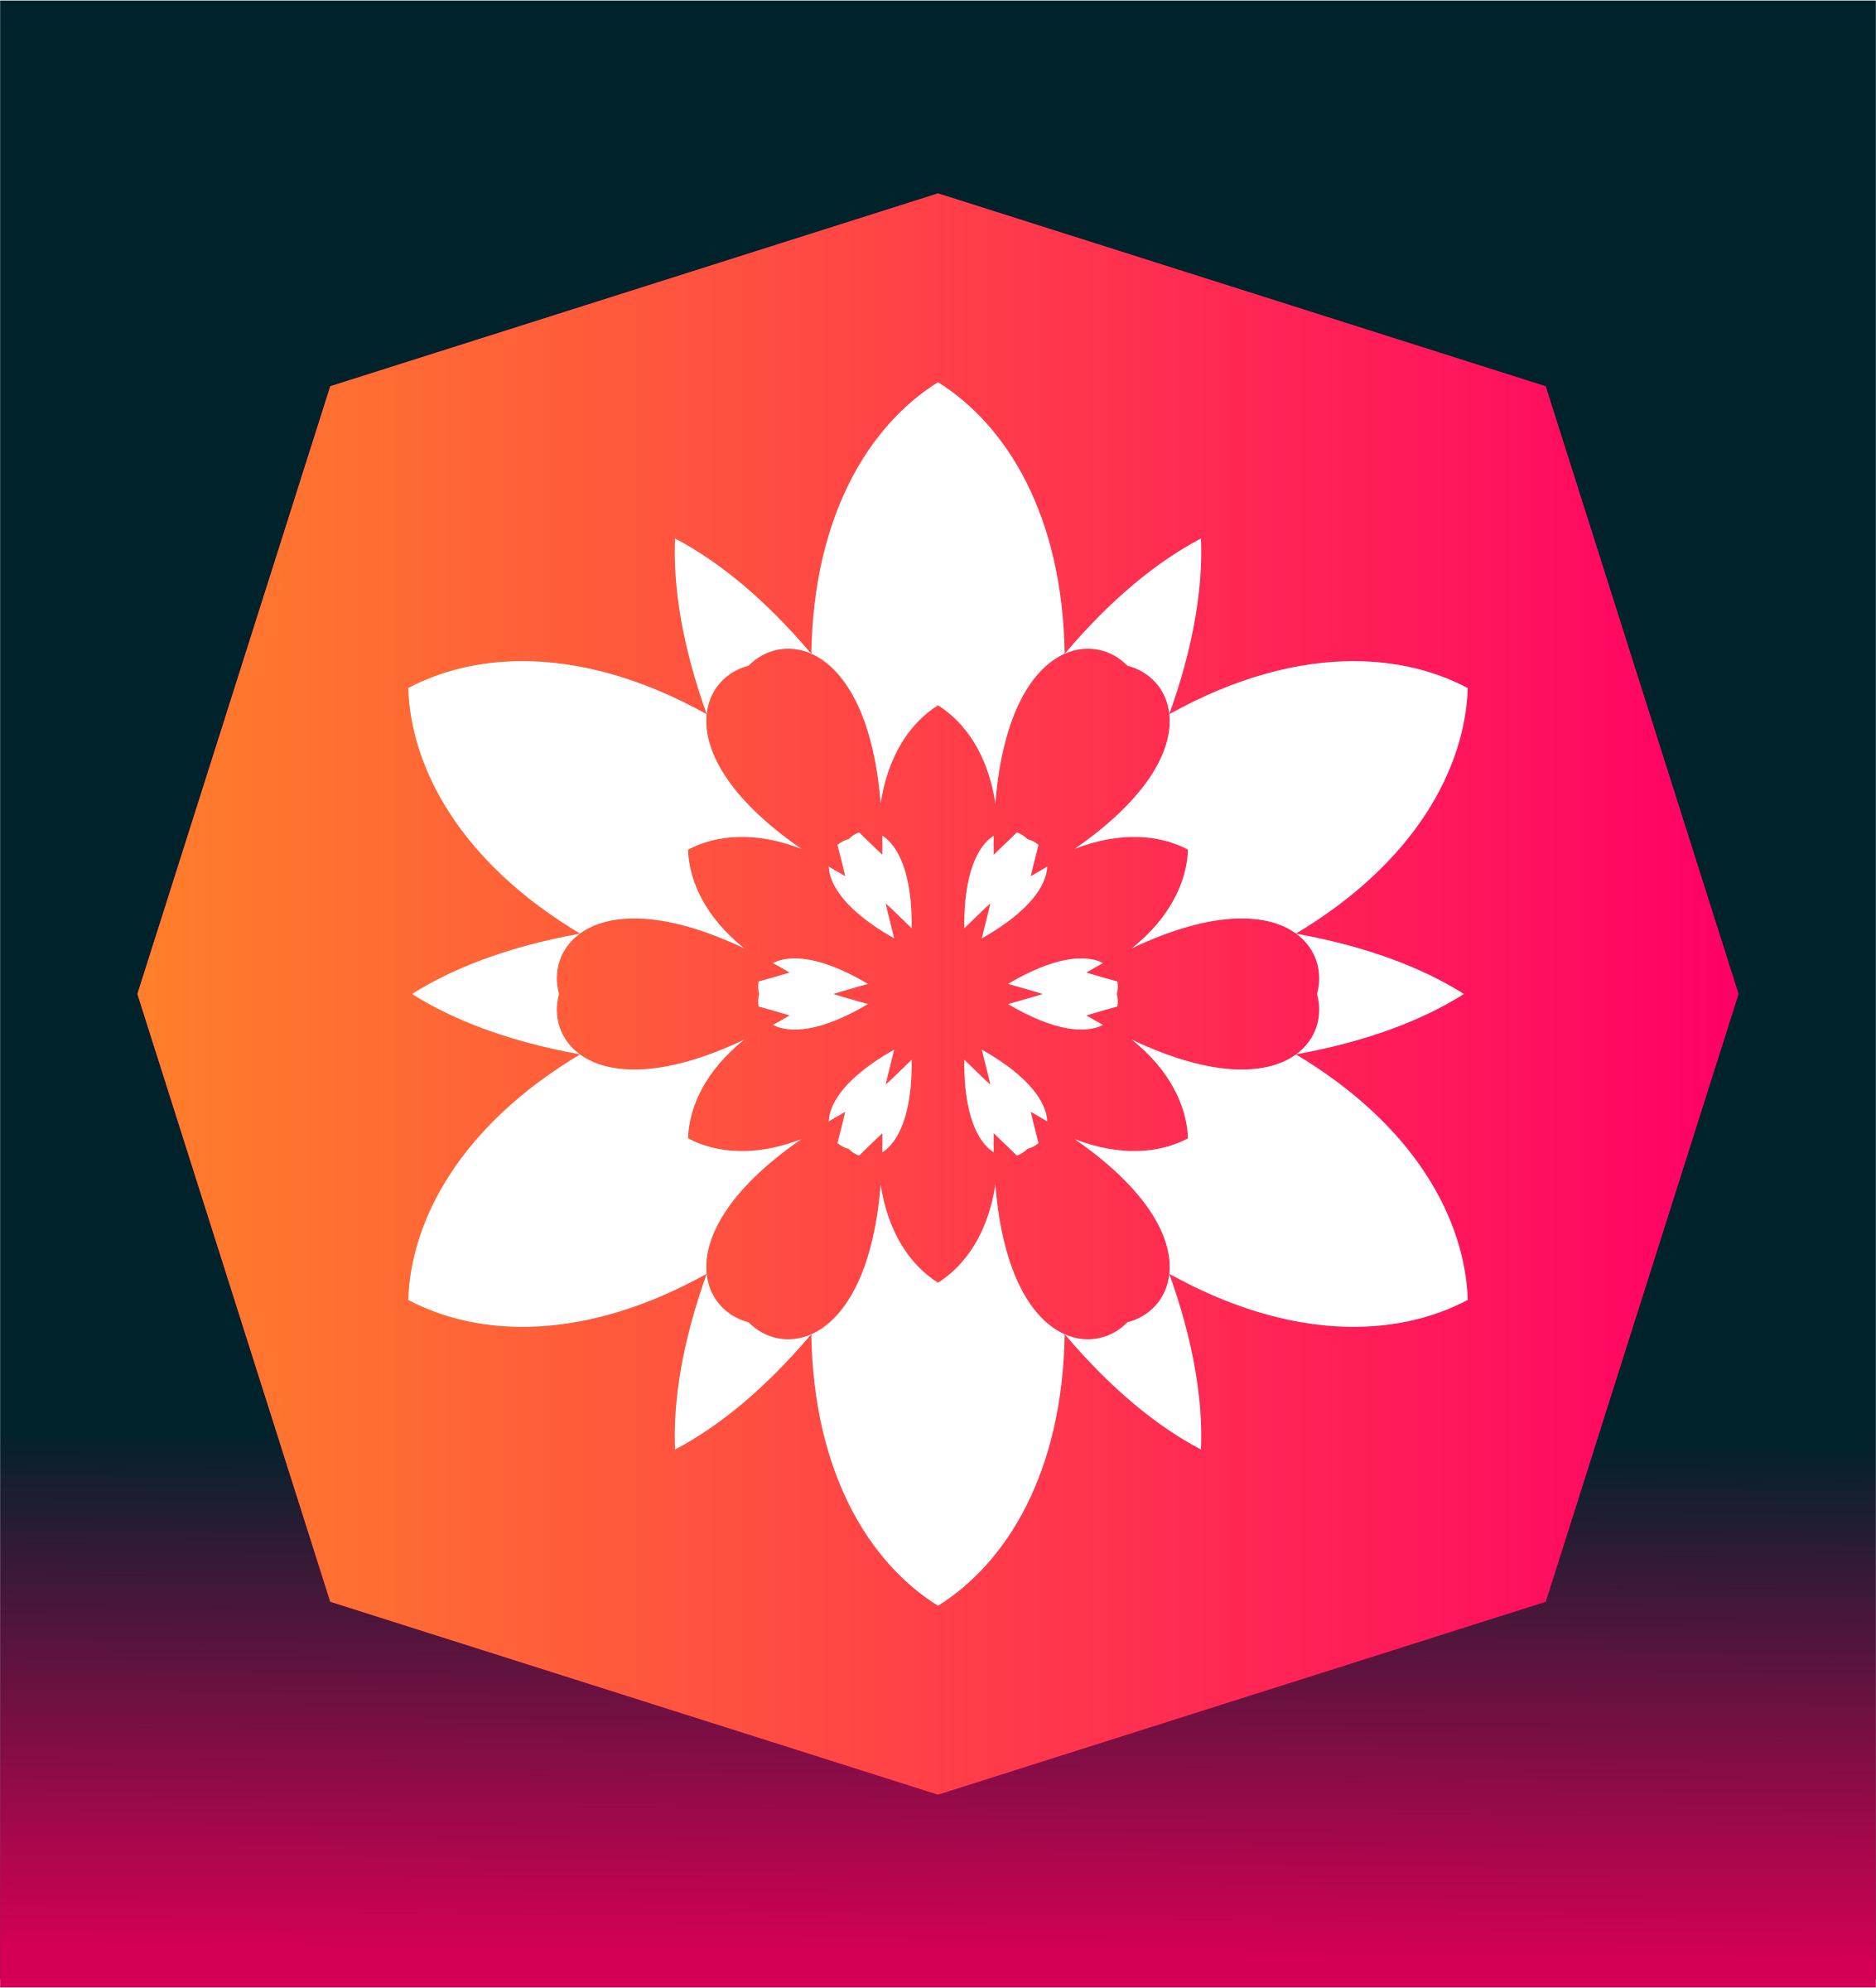 flower icon 2 by QMC.media